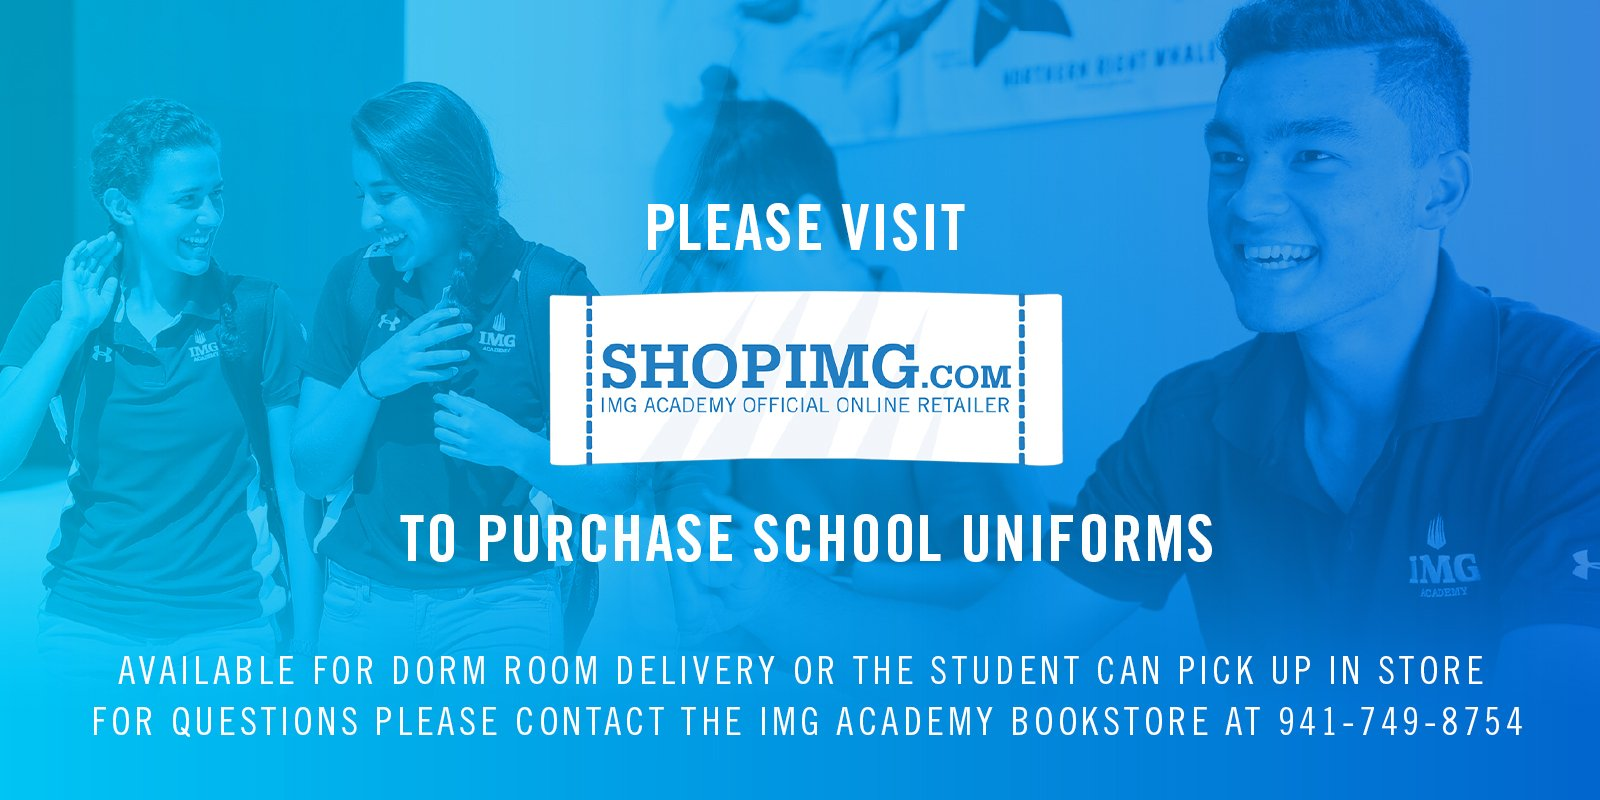 Visit ShopIMG to purchase school uniforms